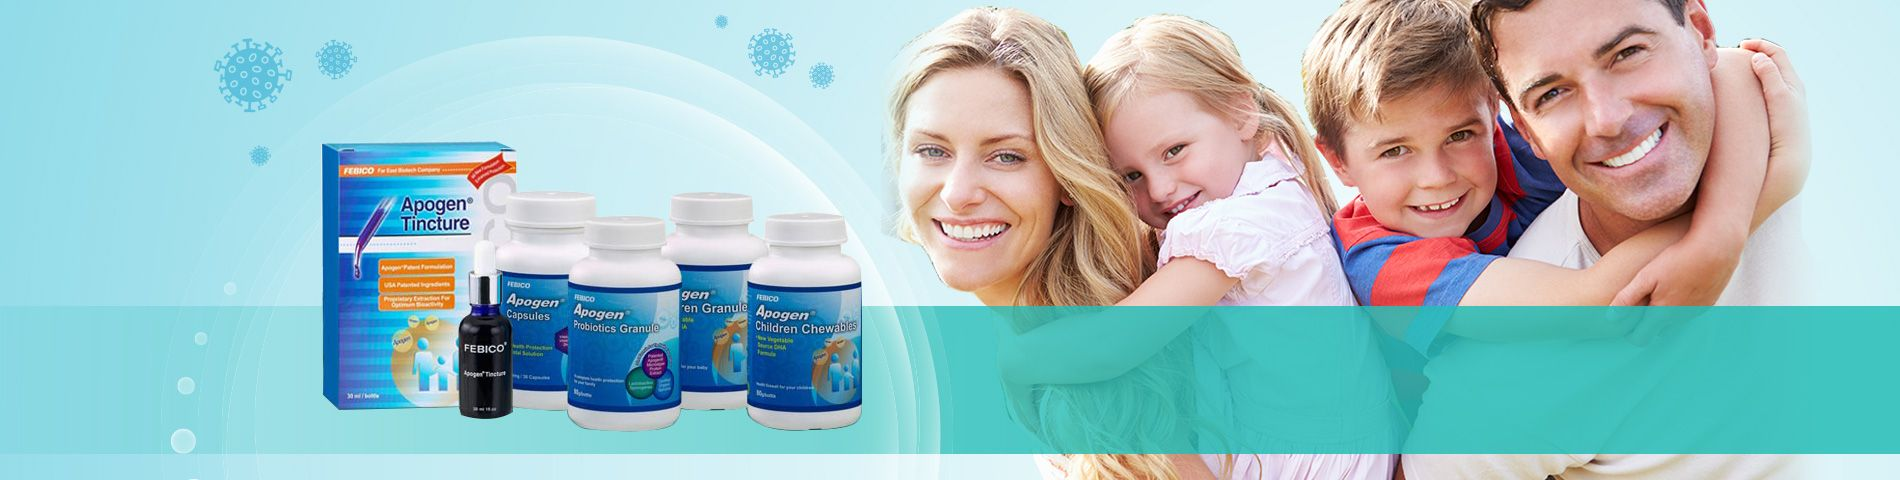 Apogen® Natural Anti-Viral Remedy Boost Your Immunity